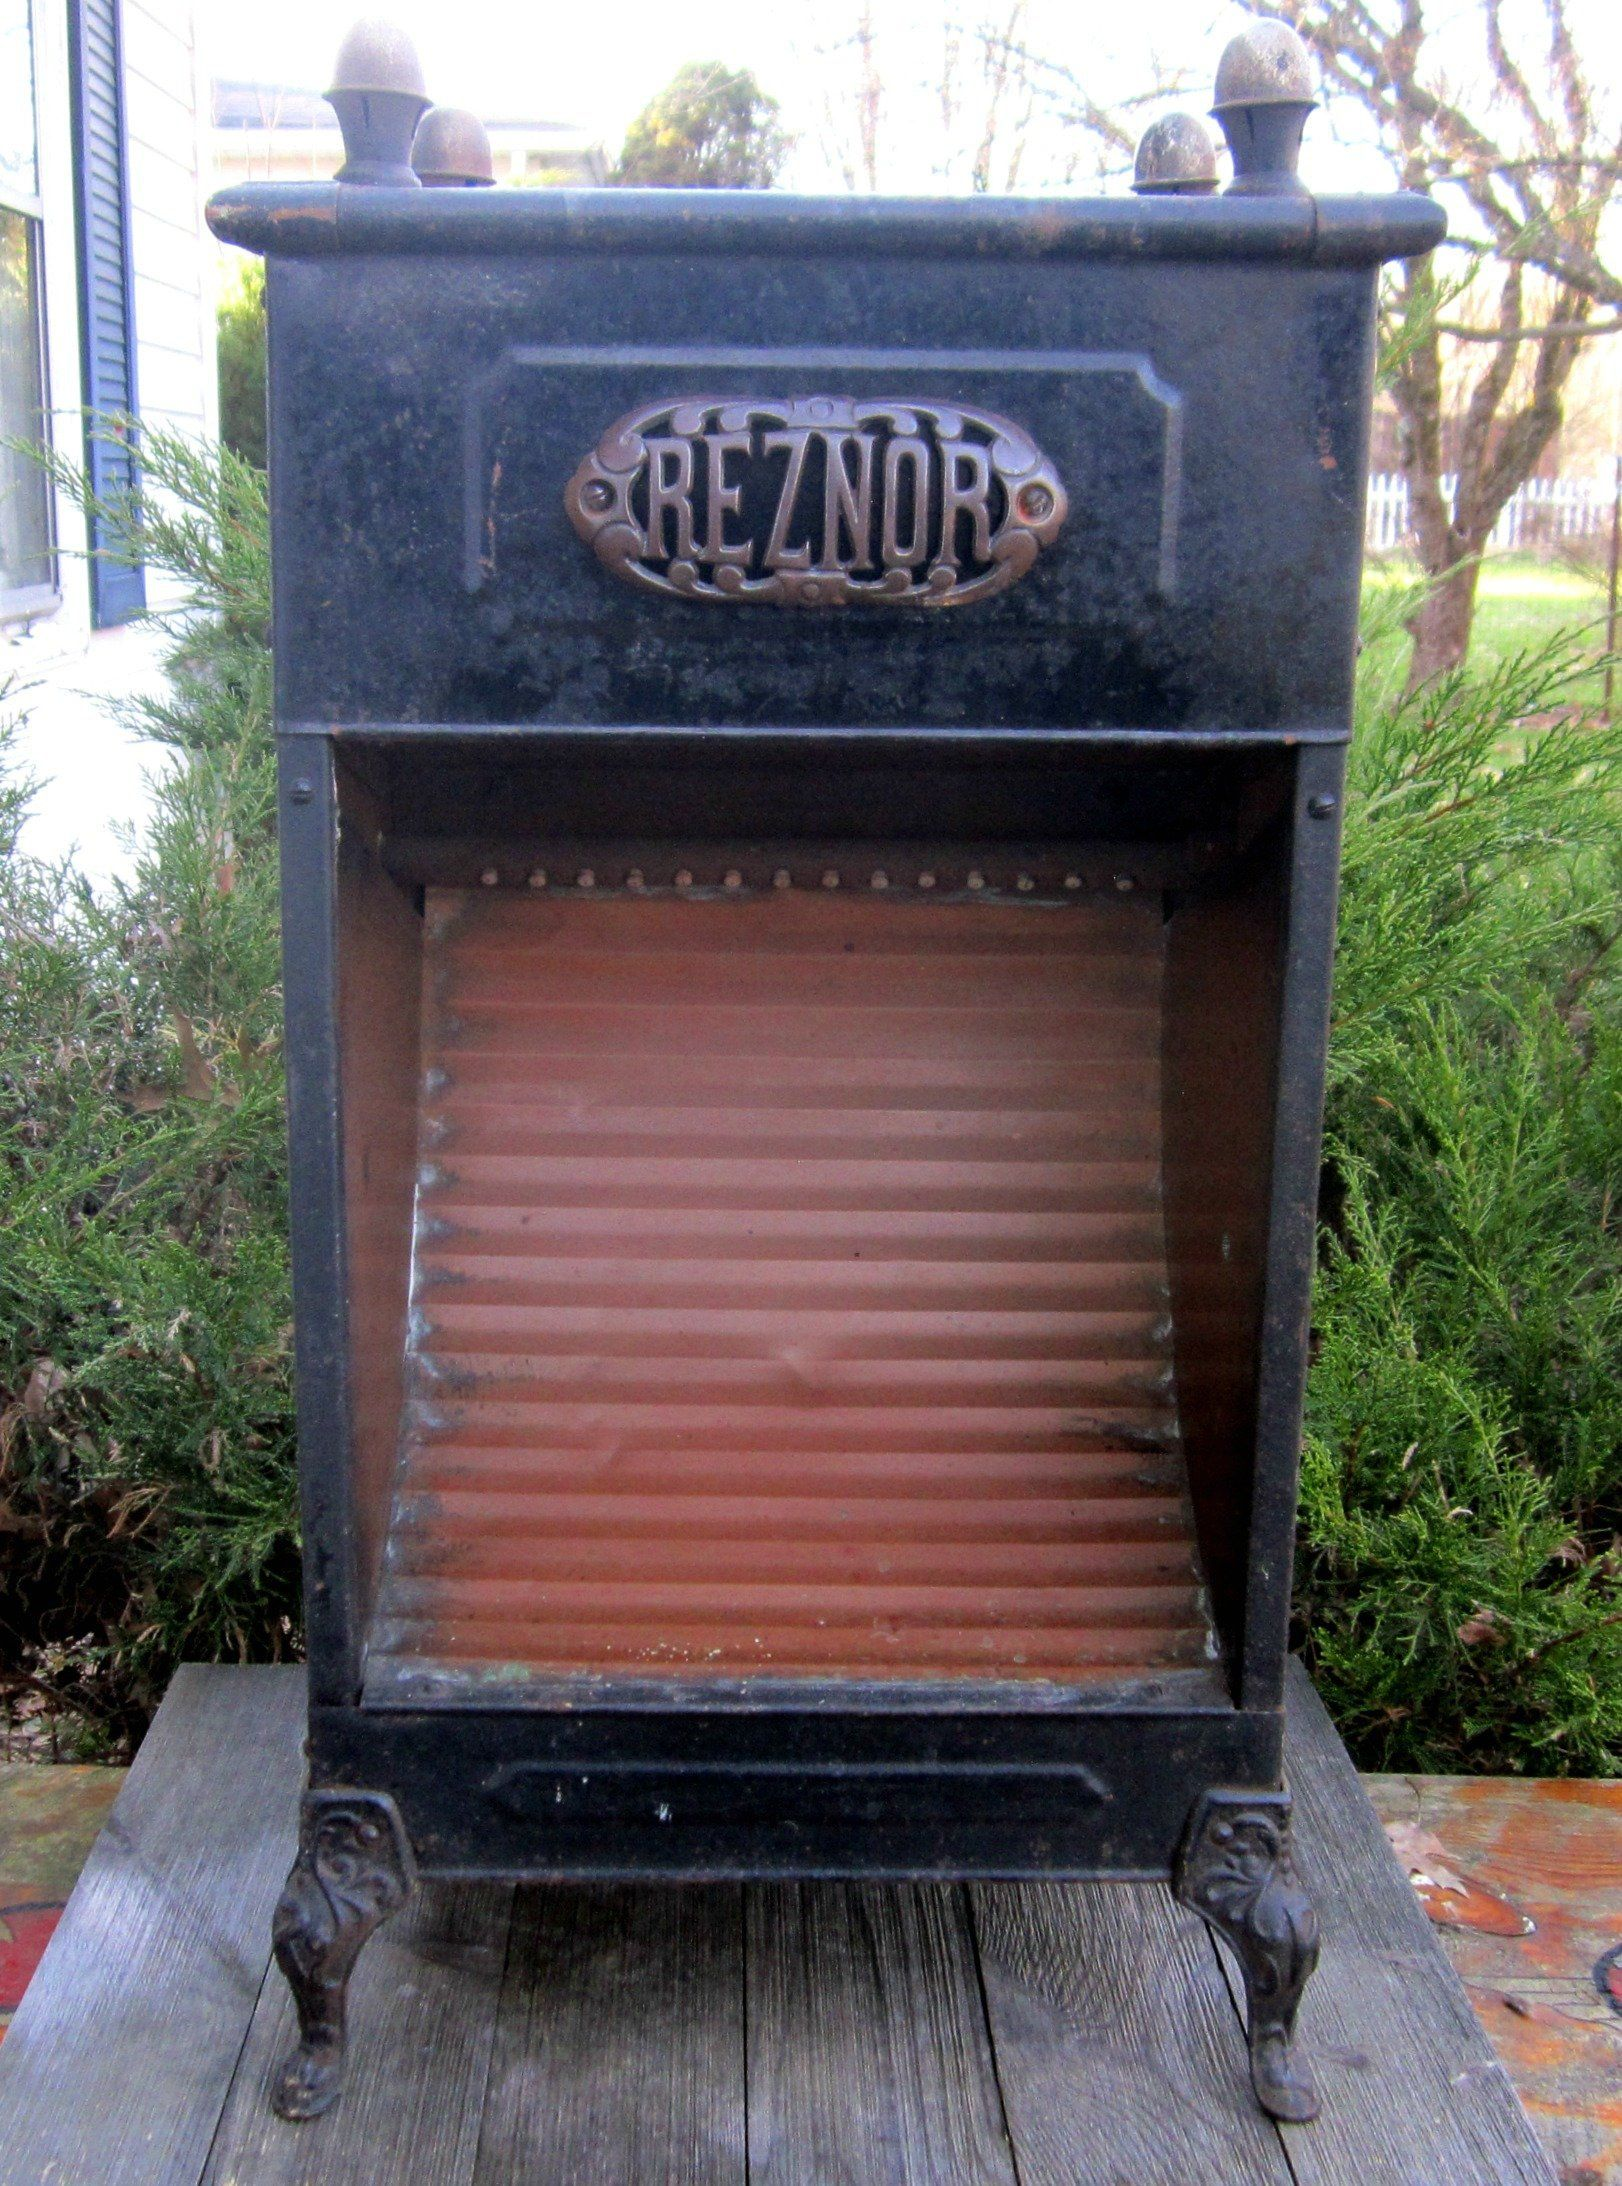 Vintage Reznor Gas Heater Stove Home Decor Man Cave Decor Metal